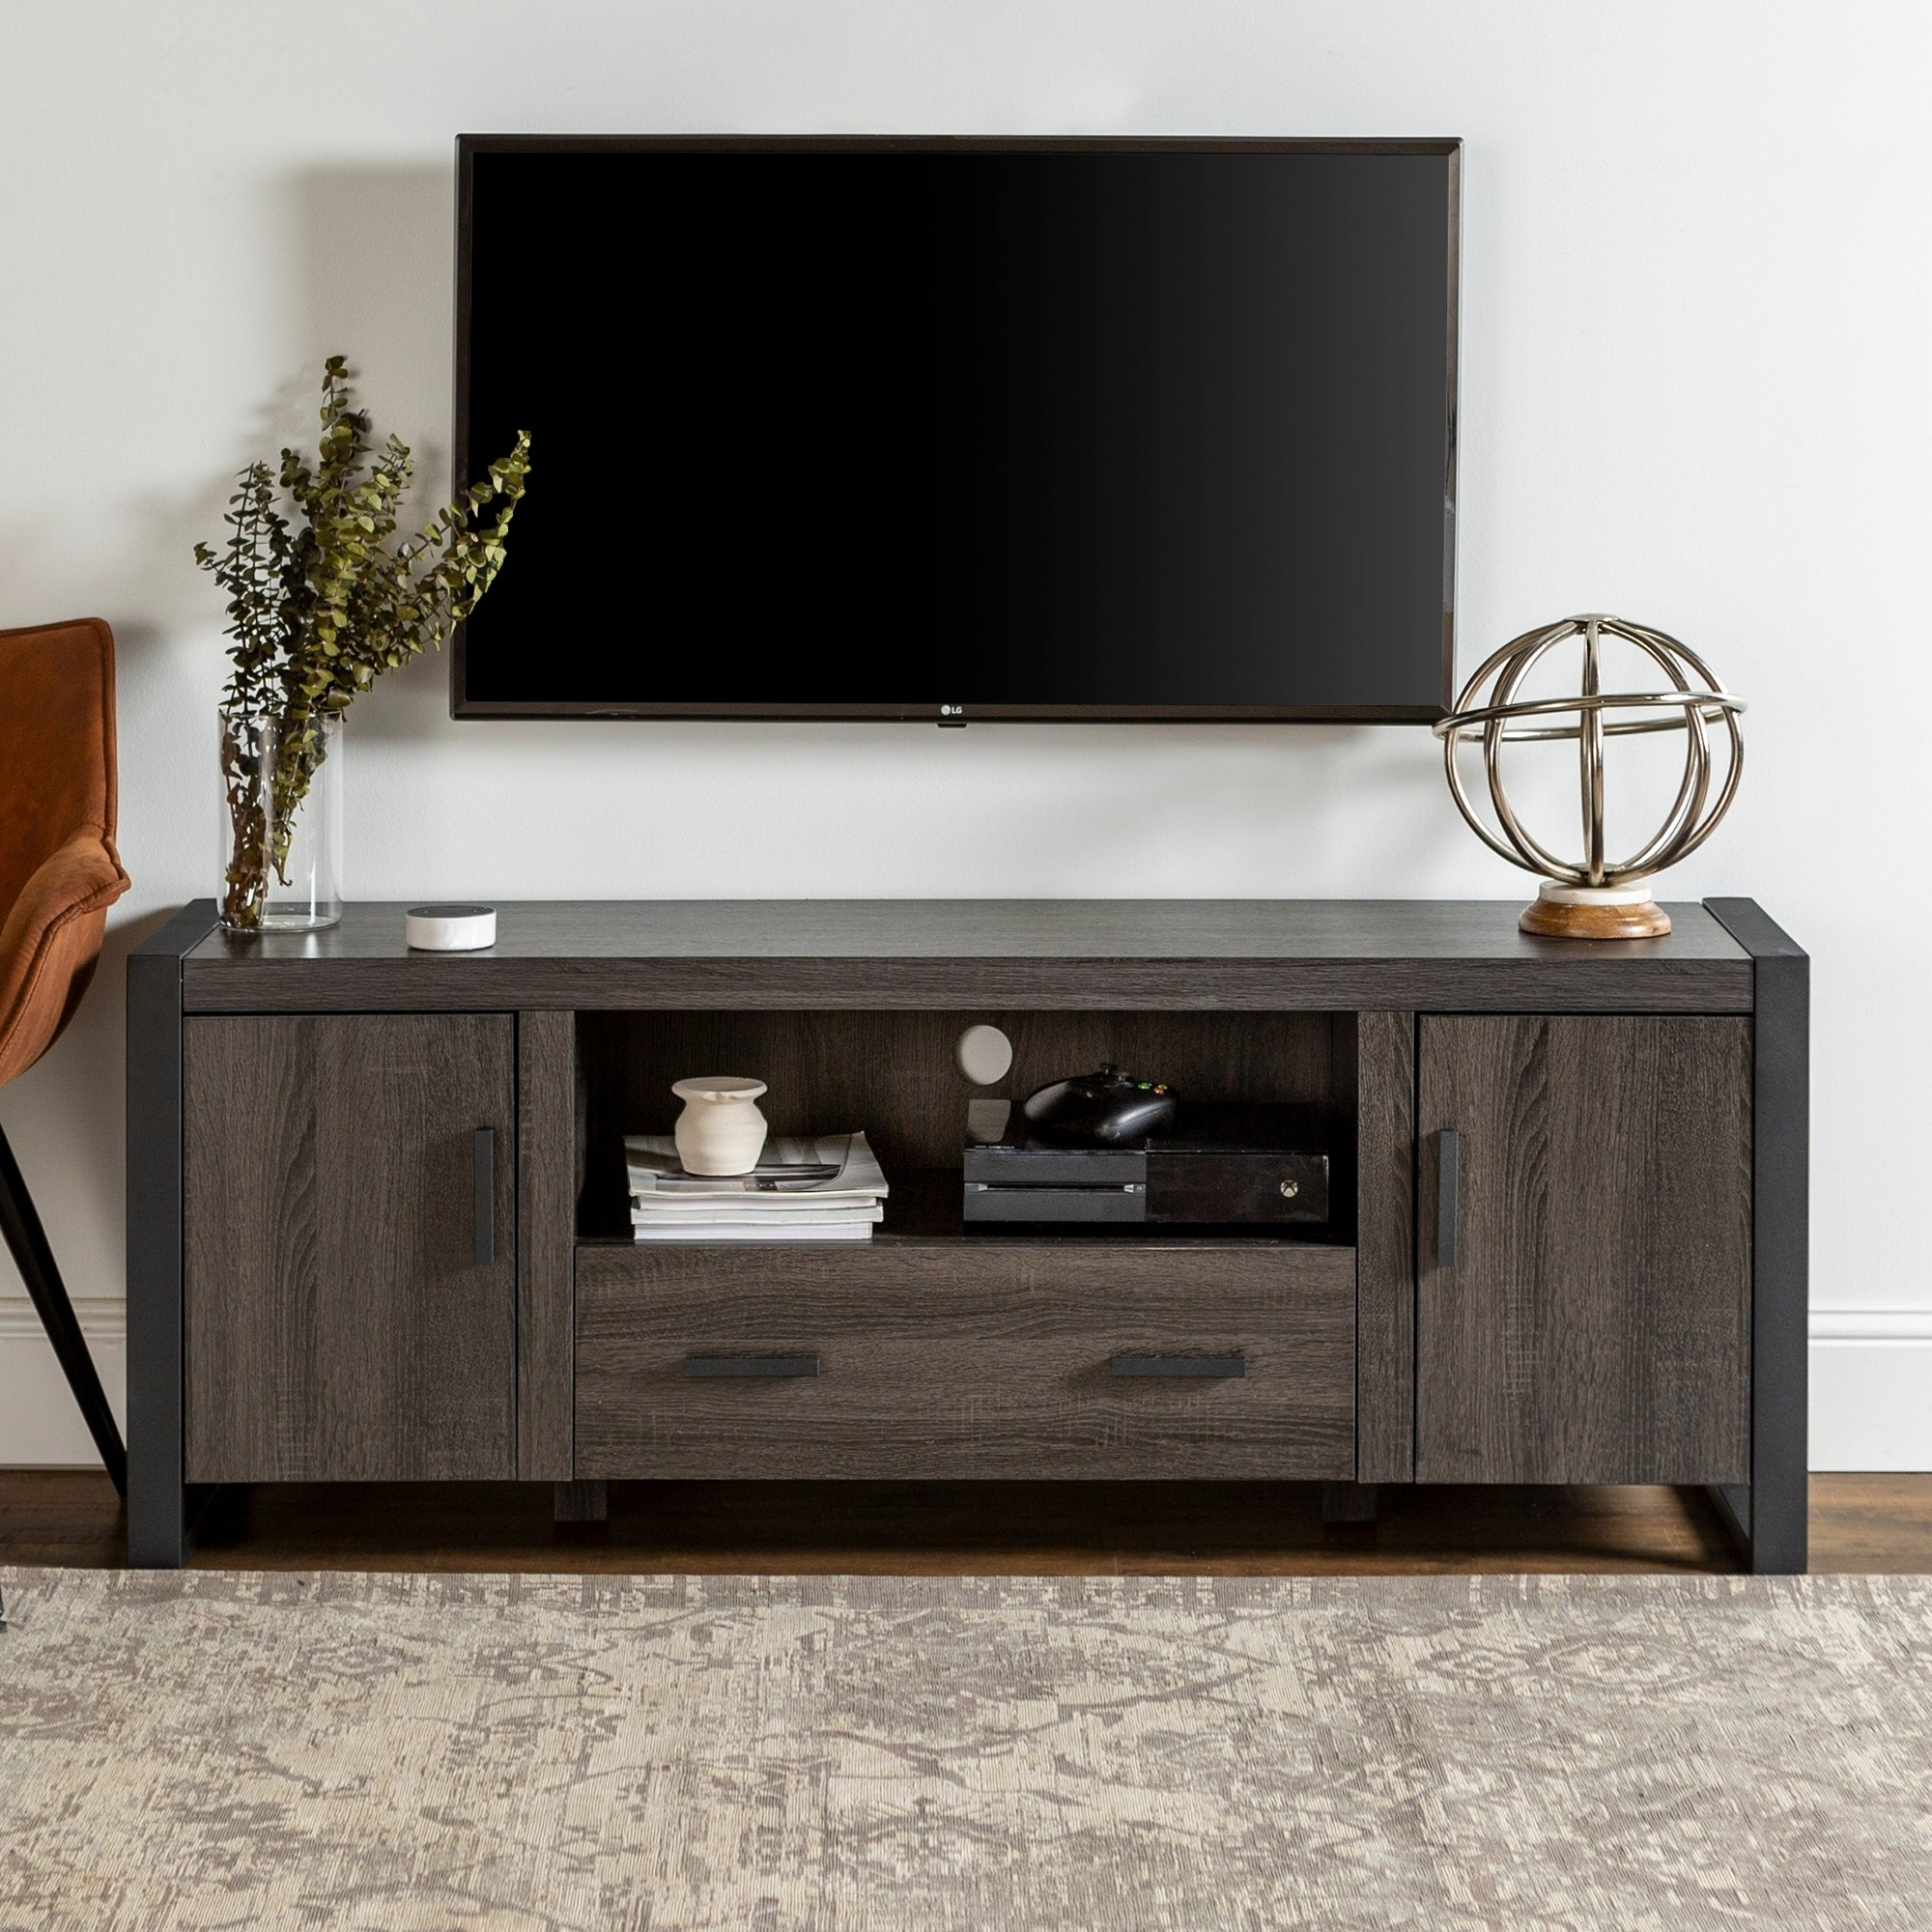 Flat Screen TV Stand 60 Inch Entertainment Center Wood AV Media Cabinet Console